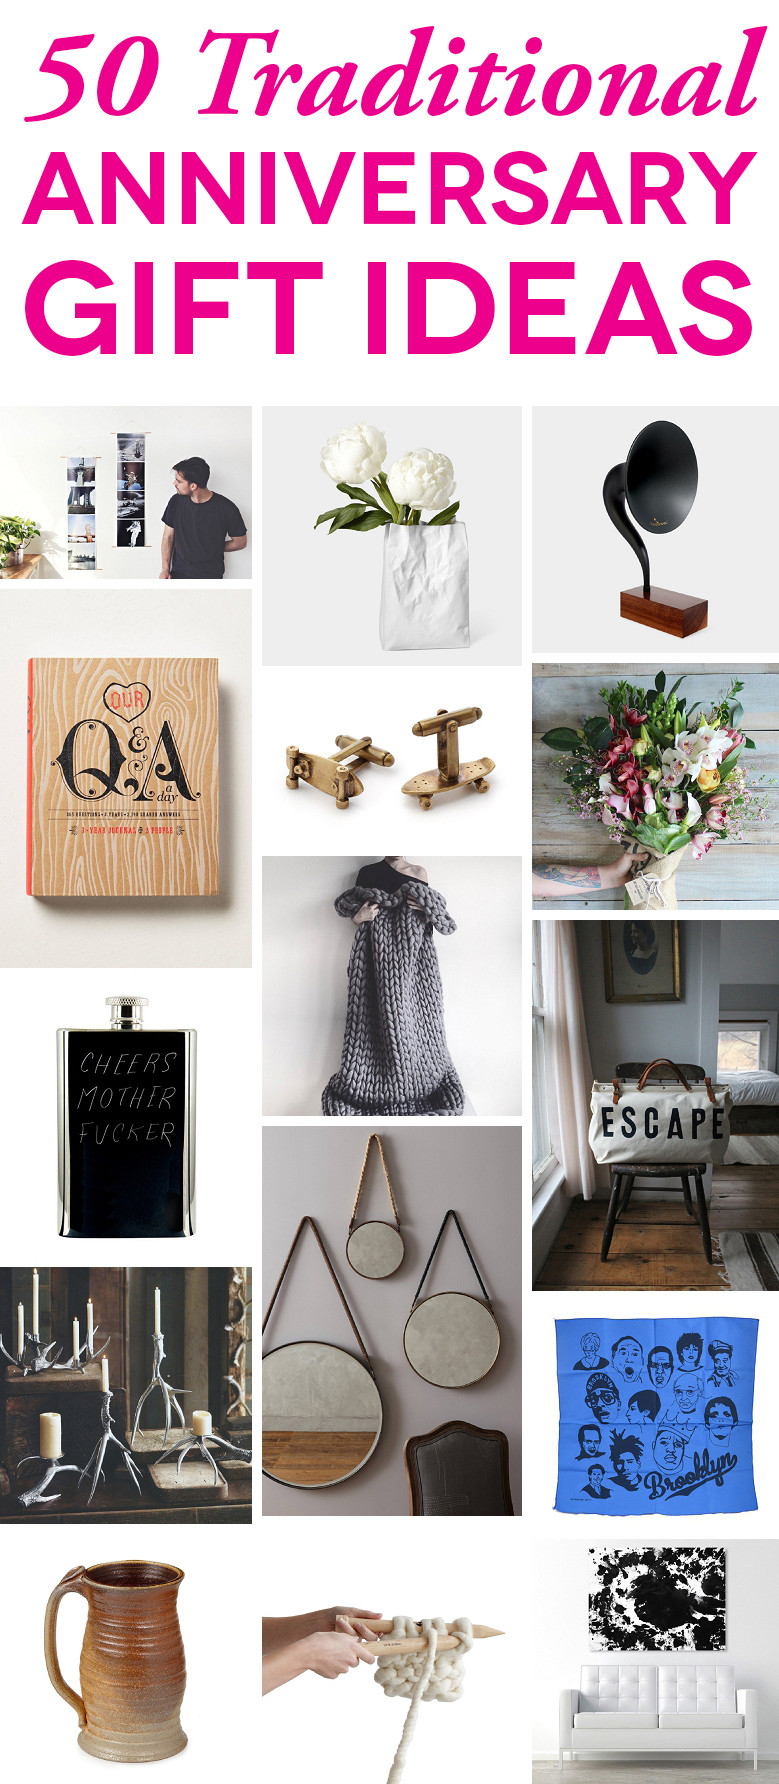 Best ideas about First Wedding Anniversary Gift Ideas . Save or Pin Traditional Anniversary Gifts Ideas Guaranteed To Delight Now.